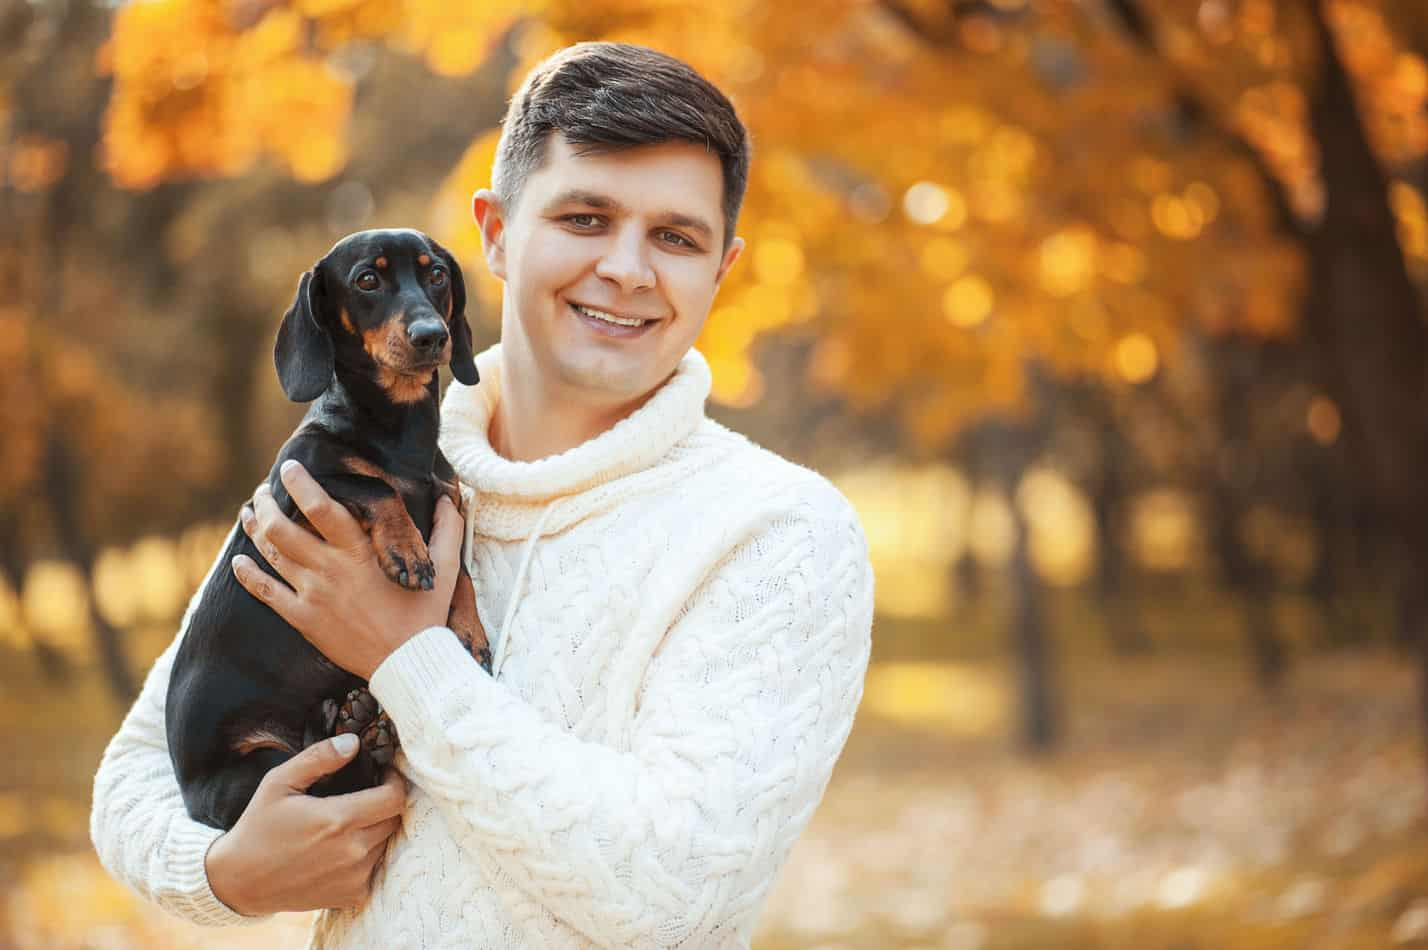 Dachshund Temperament: What's it Like Owning One?